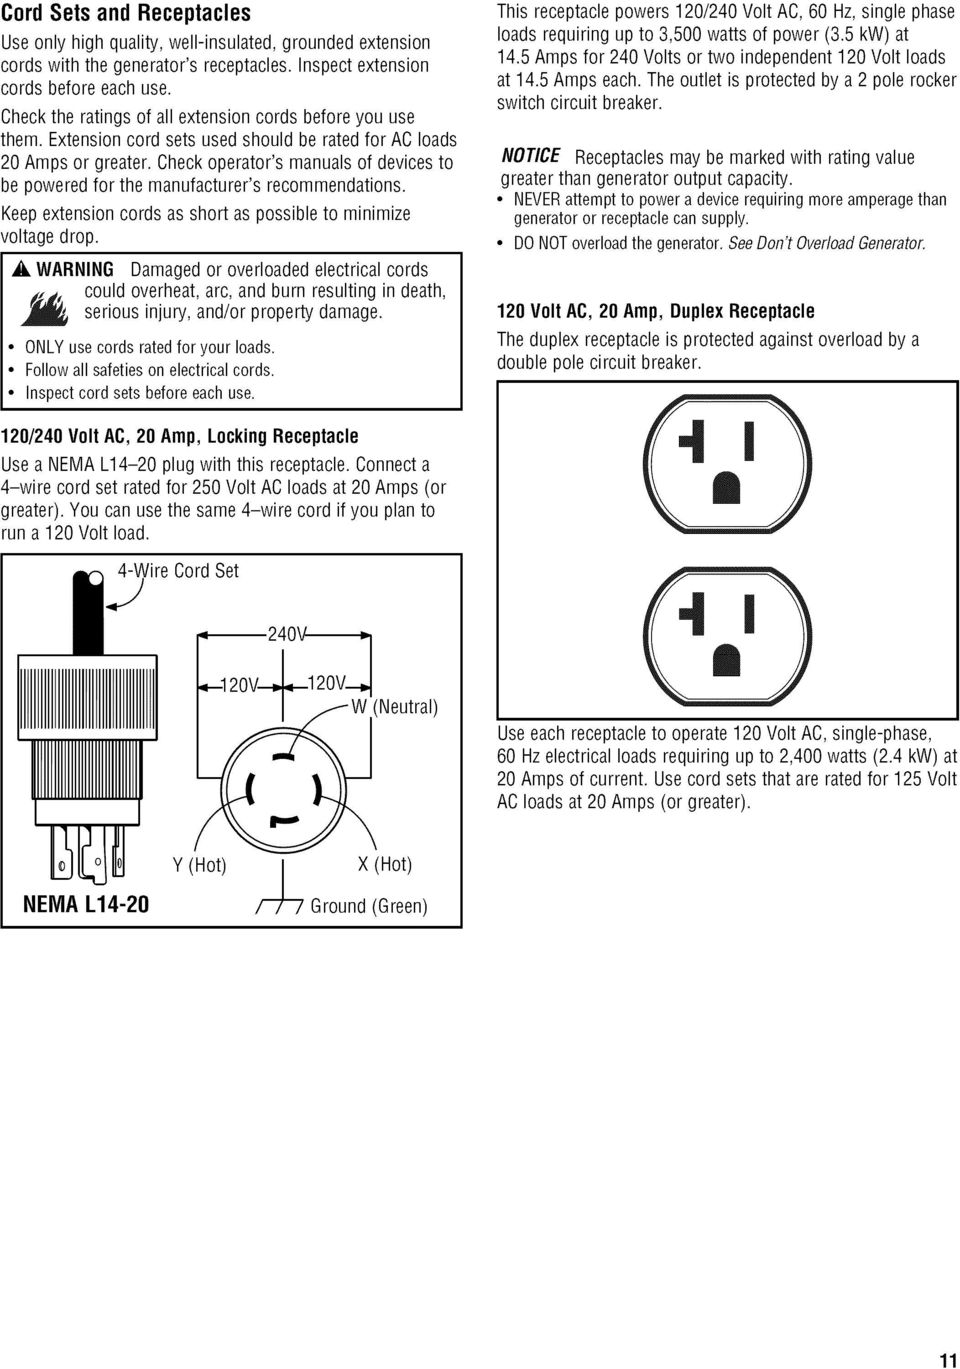 Portablegenerator Operatorsmanual Pdf Nema L14 20 Plug Wiring Diagram Checkoperators Manuals Of Devices To Be Powered For The Manufacturers Recommendations Keepextension Cords As Short